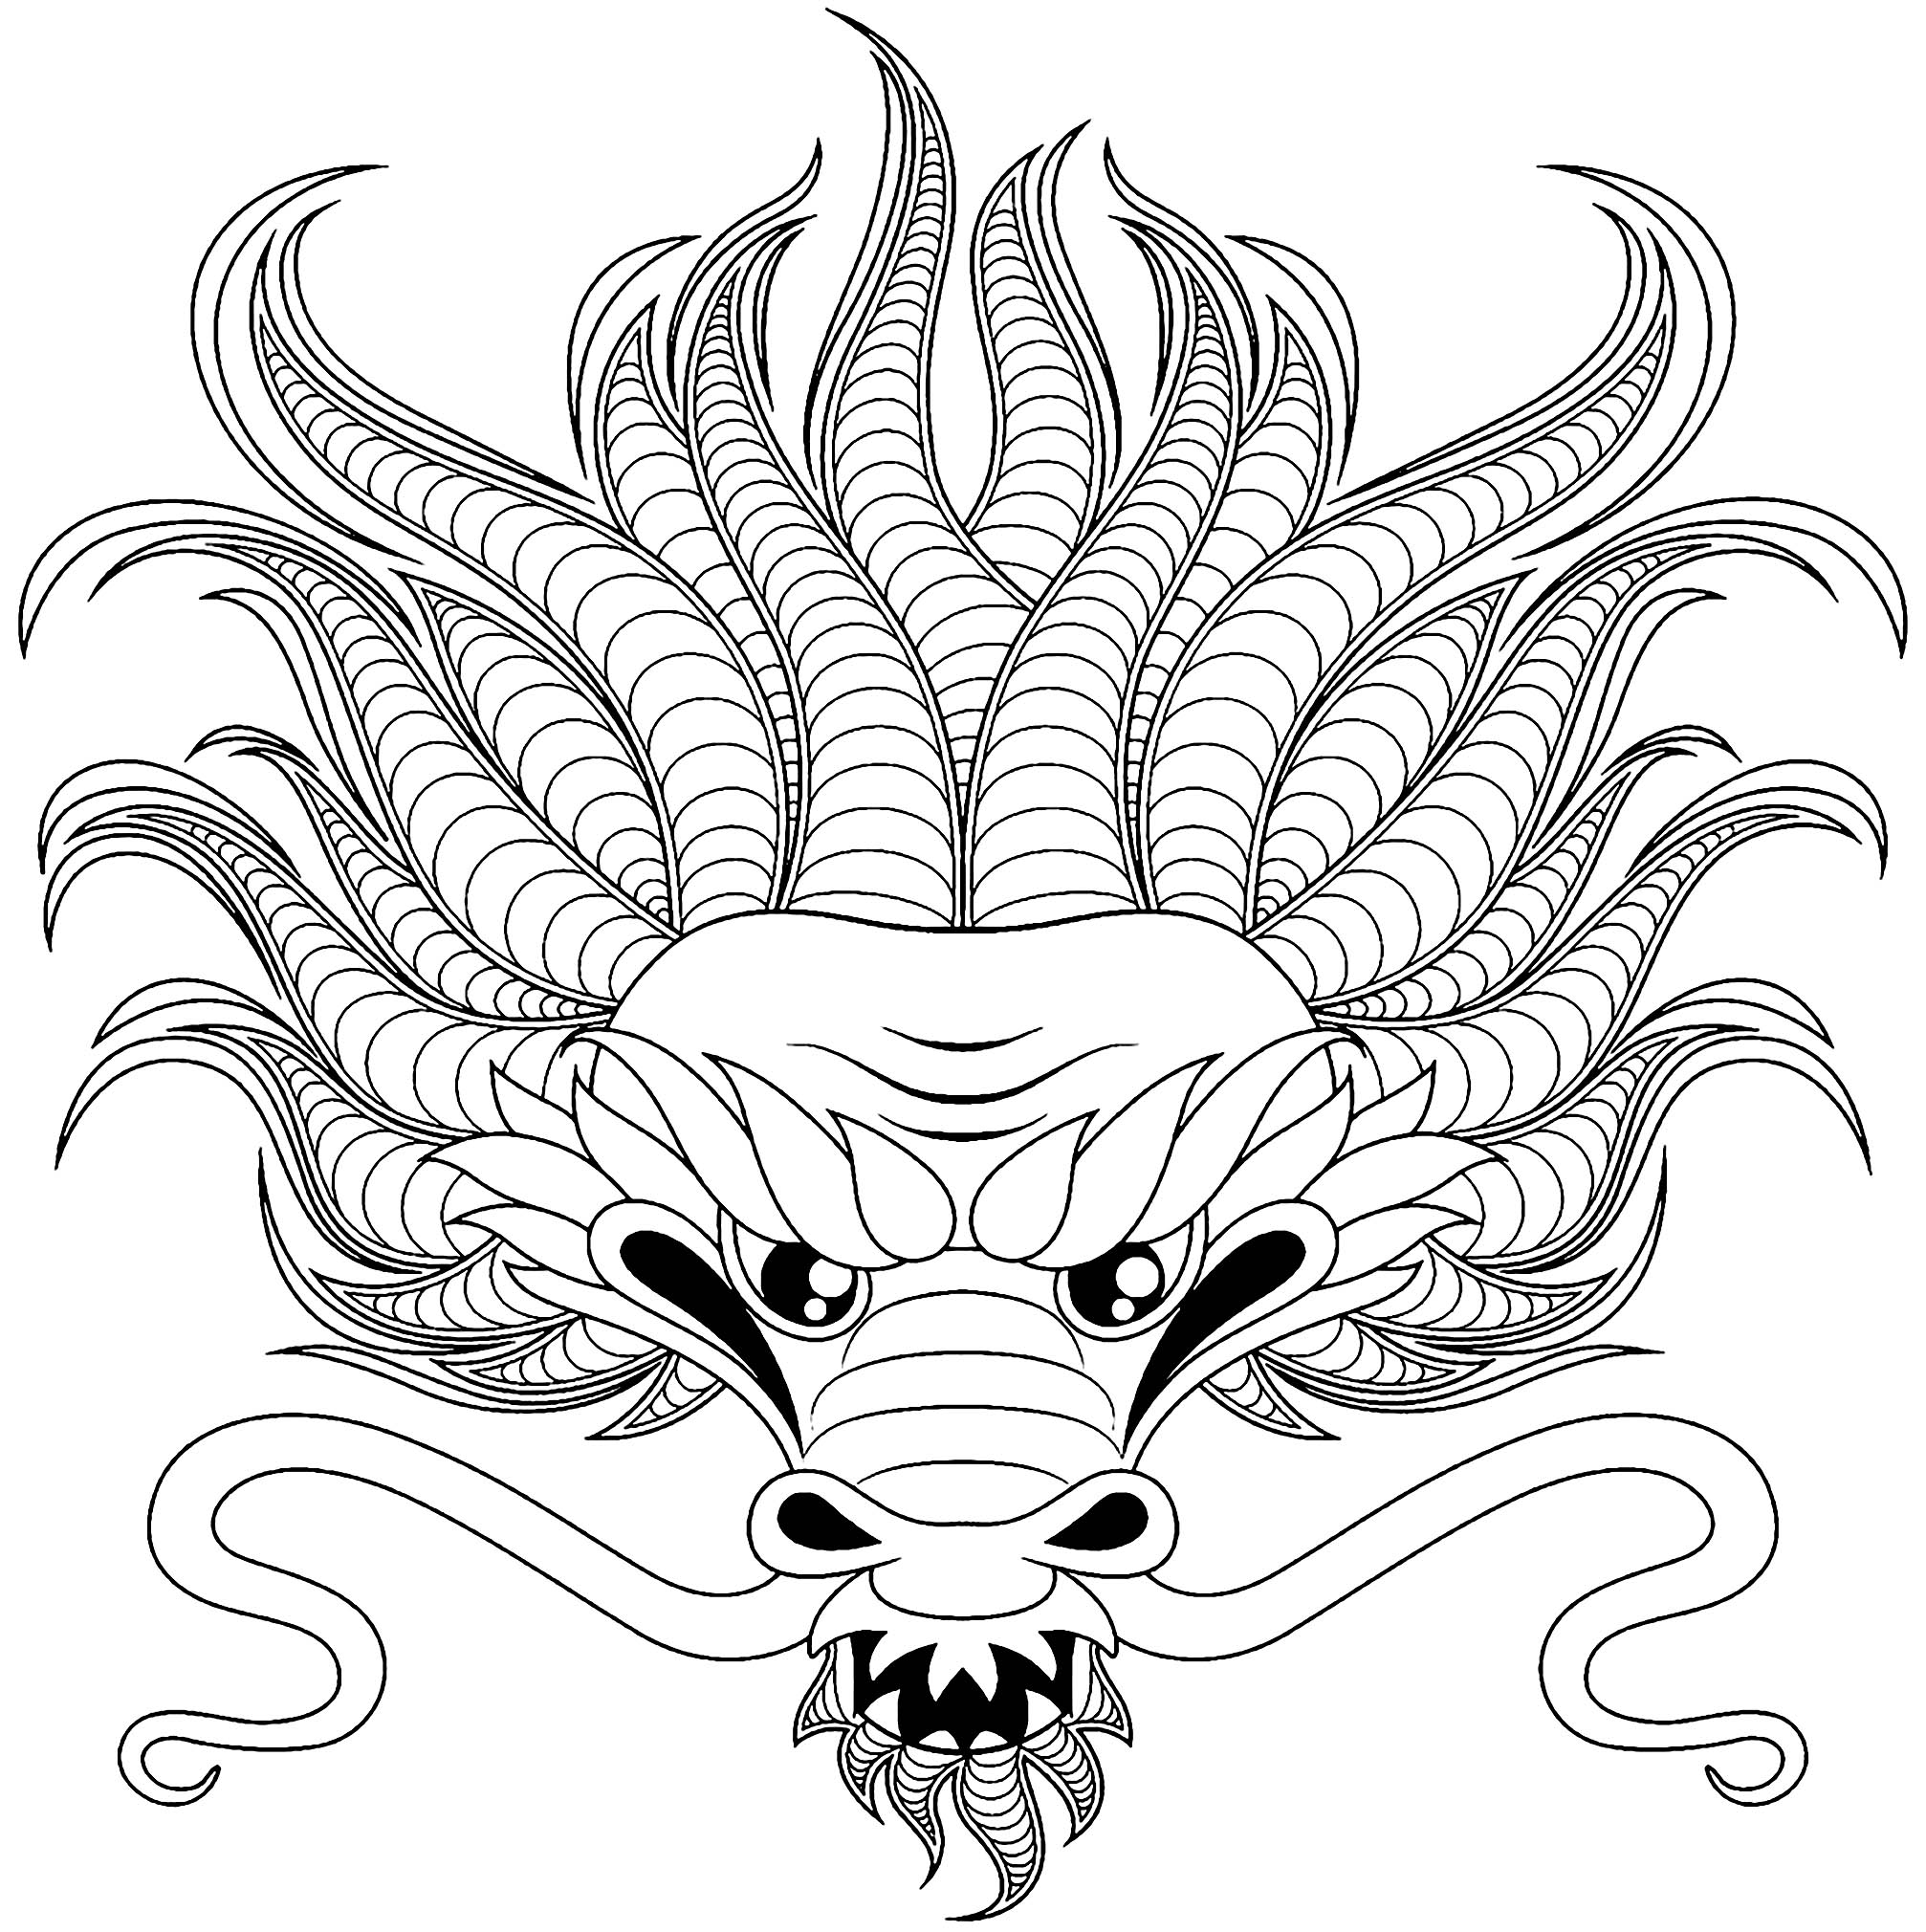 images of dragons to color chinese dragon coloring pages to download and print for free color to of dragons images